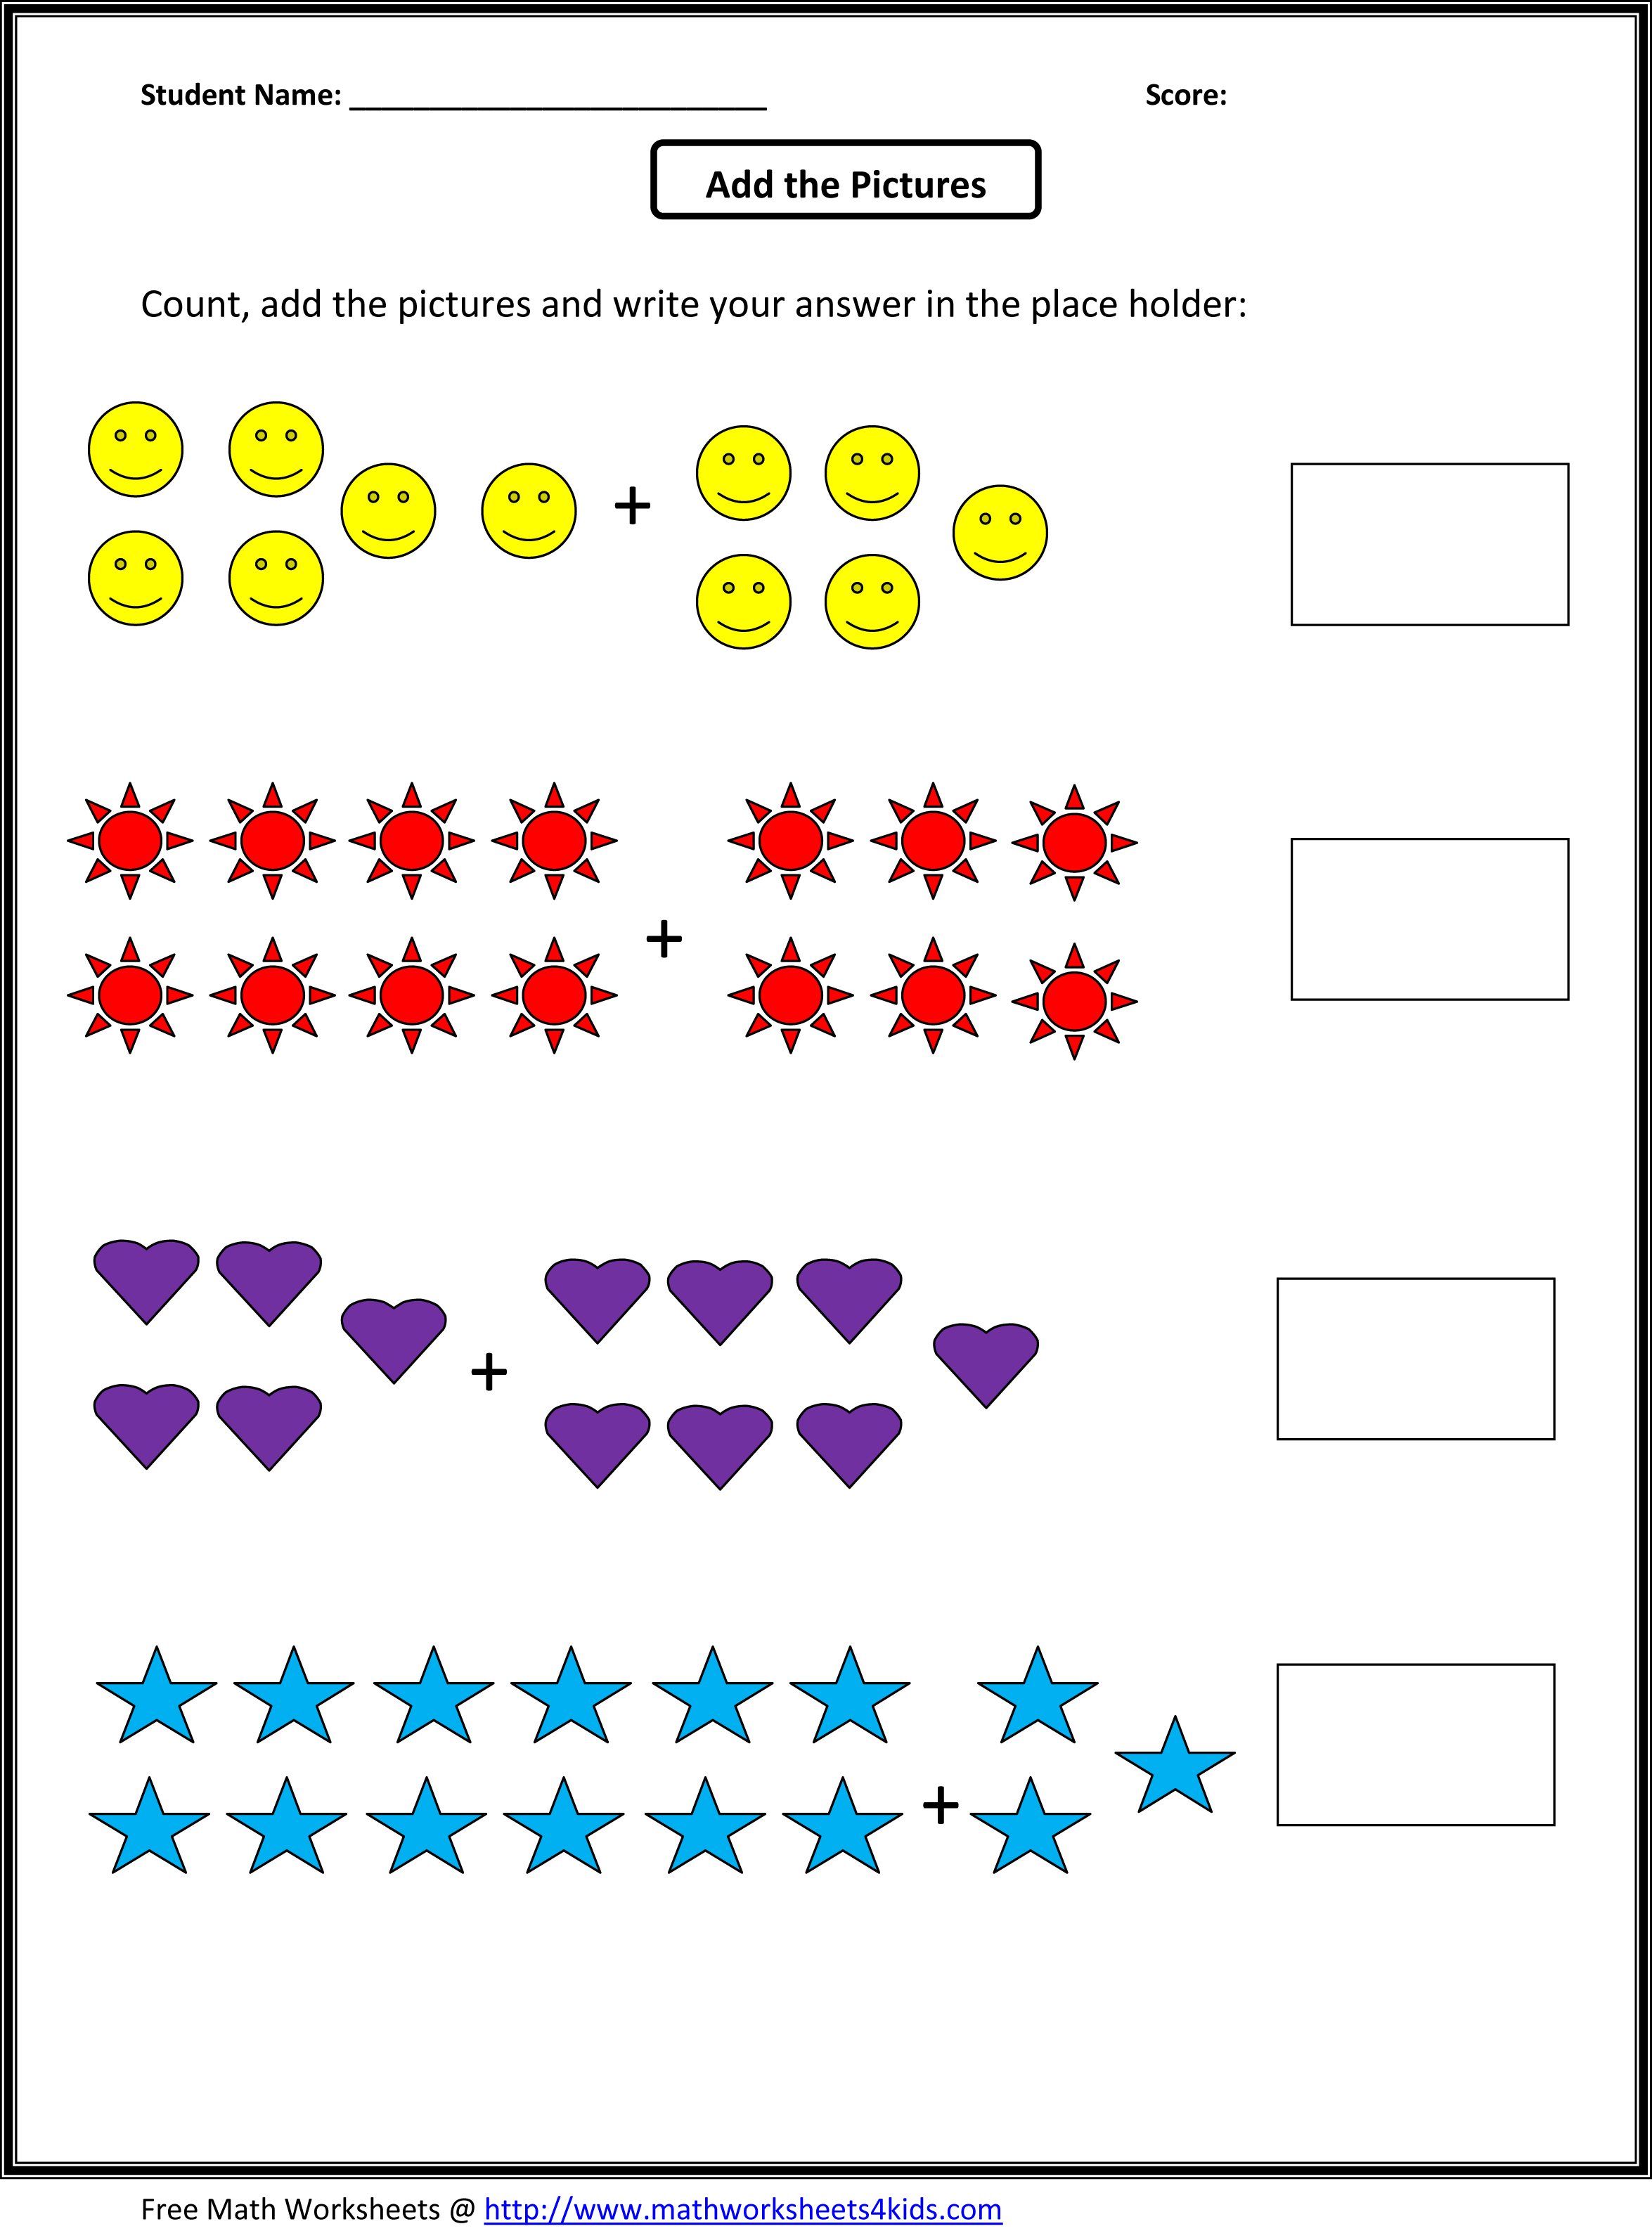 Weirdmailus  Splendid Grade  Maths Worksheet  Reocurent With Fair Math Worksheets For St Grade Free  Reocurent With Alluring Congruent Triangles And Similar Triangles Worksheet Also Second Grade Fraction Worksheets In Addition Tree Diagram Worksheets And Kinematics Equations Worksheet As Well As Job Hazard Analysis Worksheet Additionally Reciprocal Worksheet From Reocurentcom With Weirdmailus  Fair Grade  Maths Worksheet  Reocurent With Alluring Math Worksheets For St Grade Free  Reocurent And Splendid Congruent Triangles And Similar Triangles Worksheet Also Second Grade Fraction Worksheets In Addition Tree Diagram Worksheets From Reocurentcom